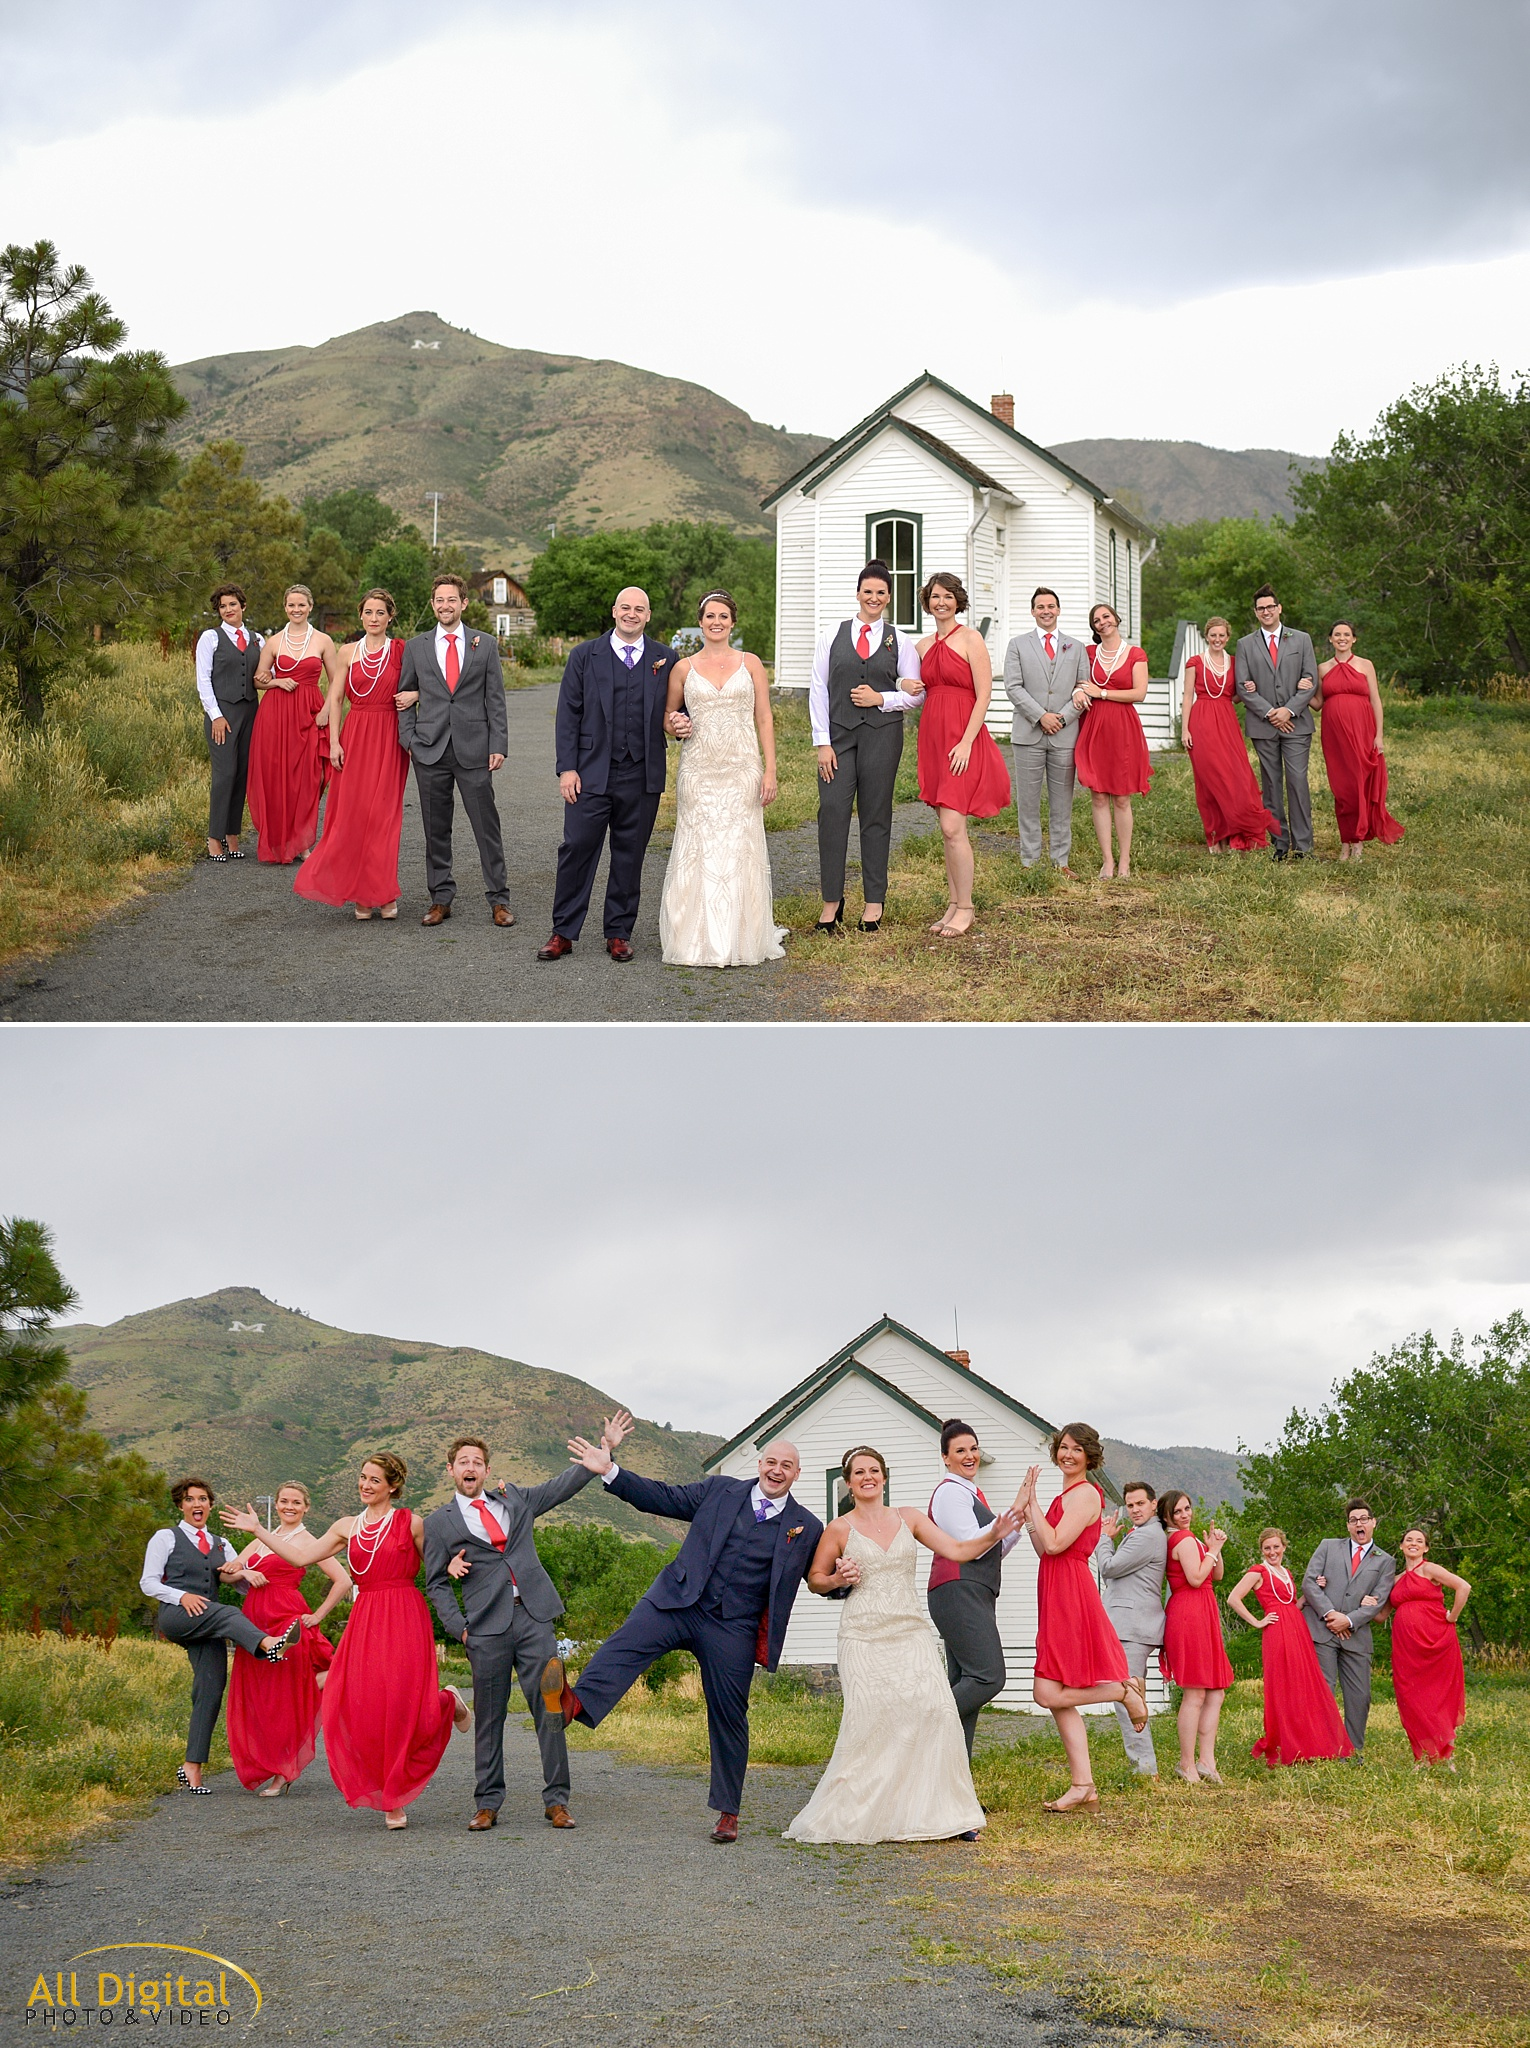 Bridal Party Photos at Clear Creek History Park photographed by All Digital Studios.